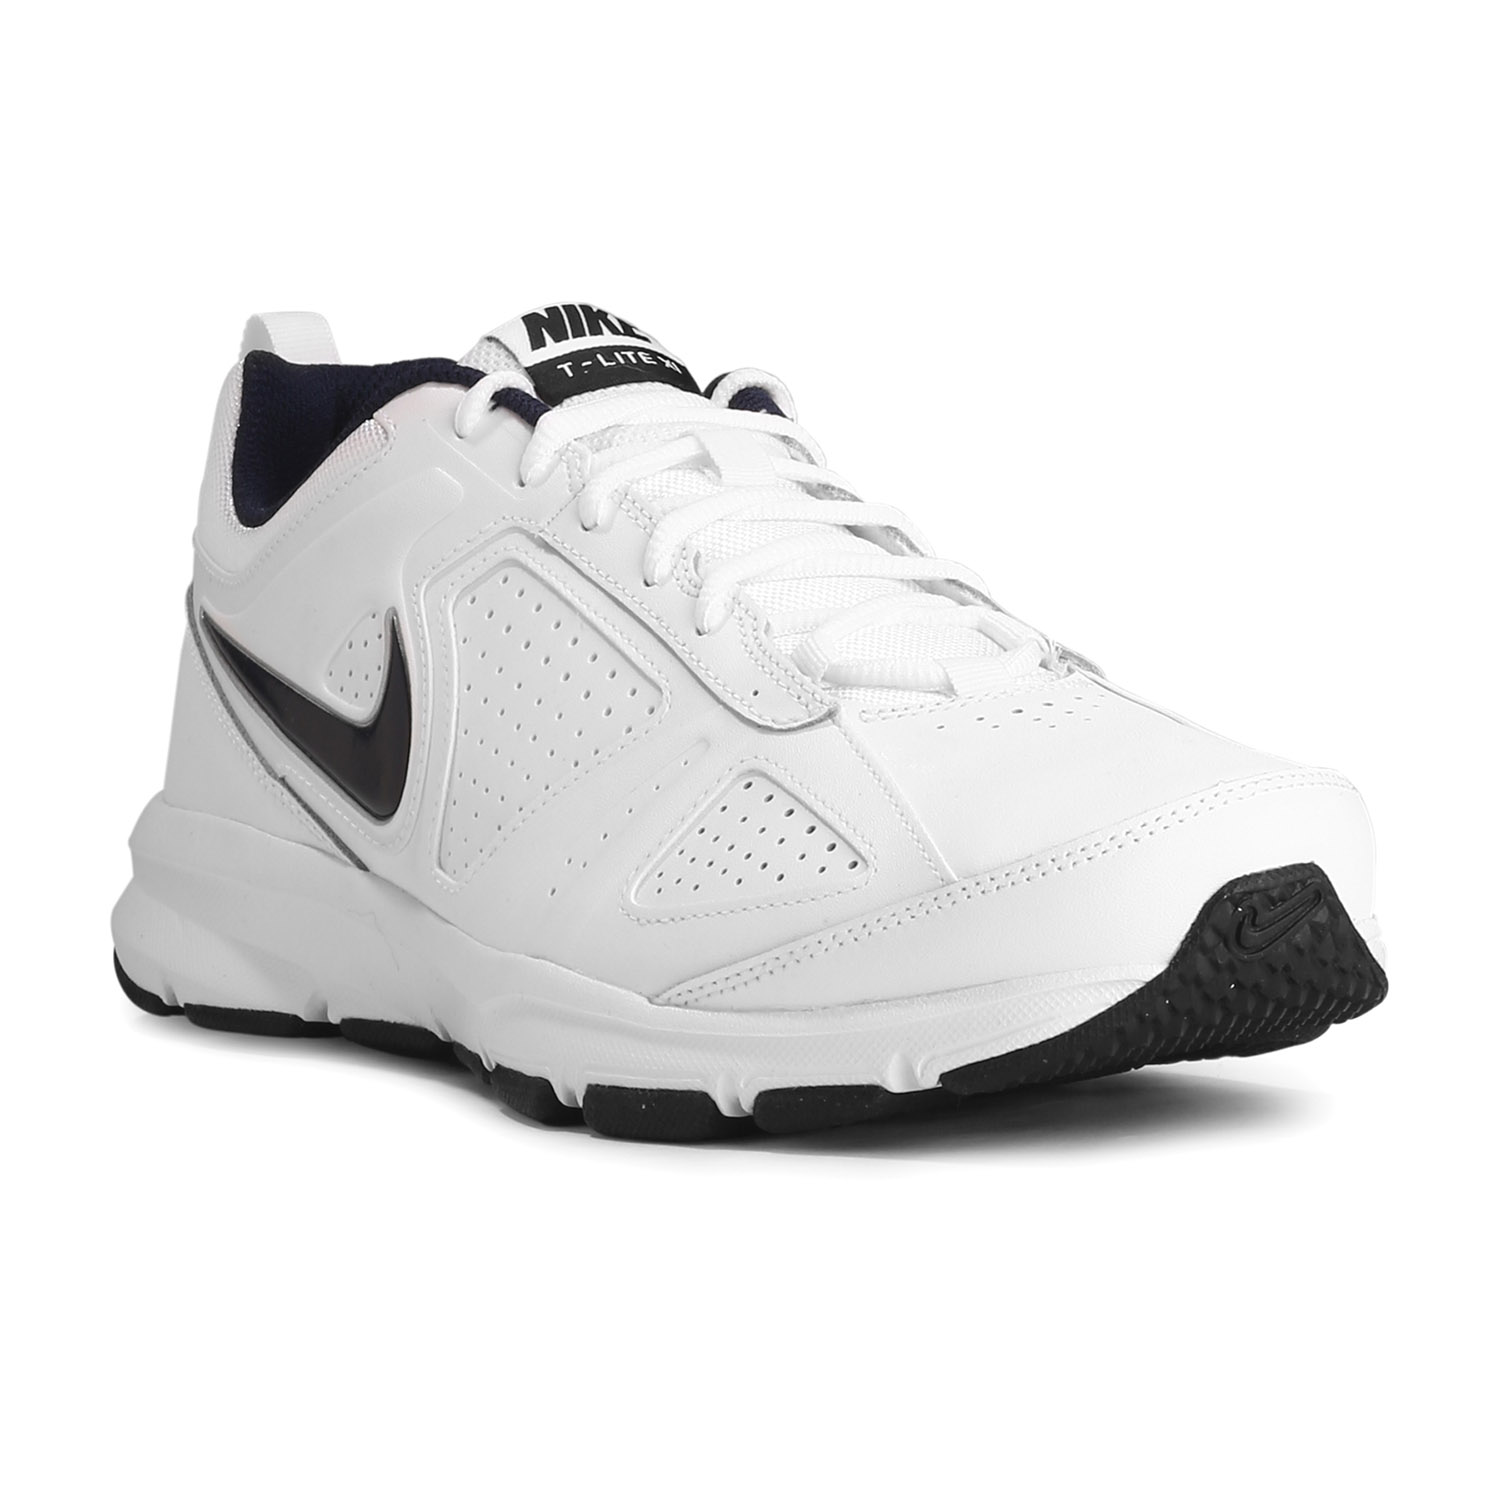 Nike Men's T Lite Training Shoe